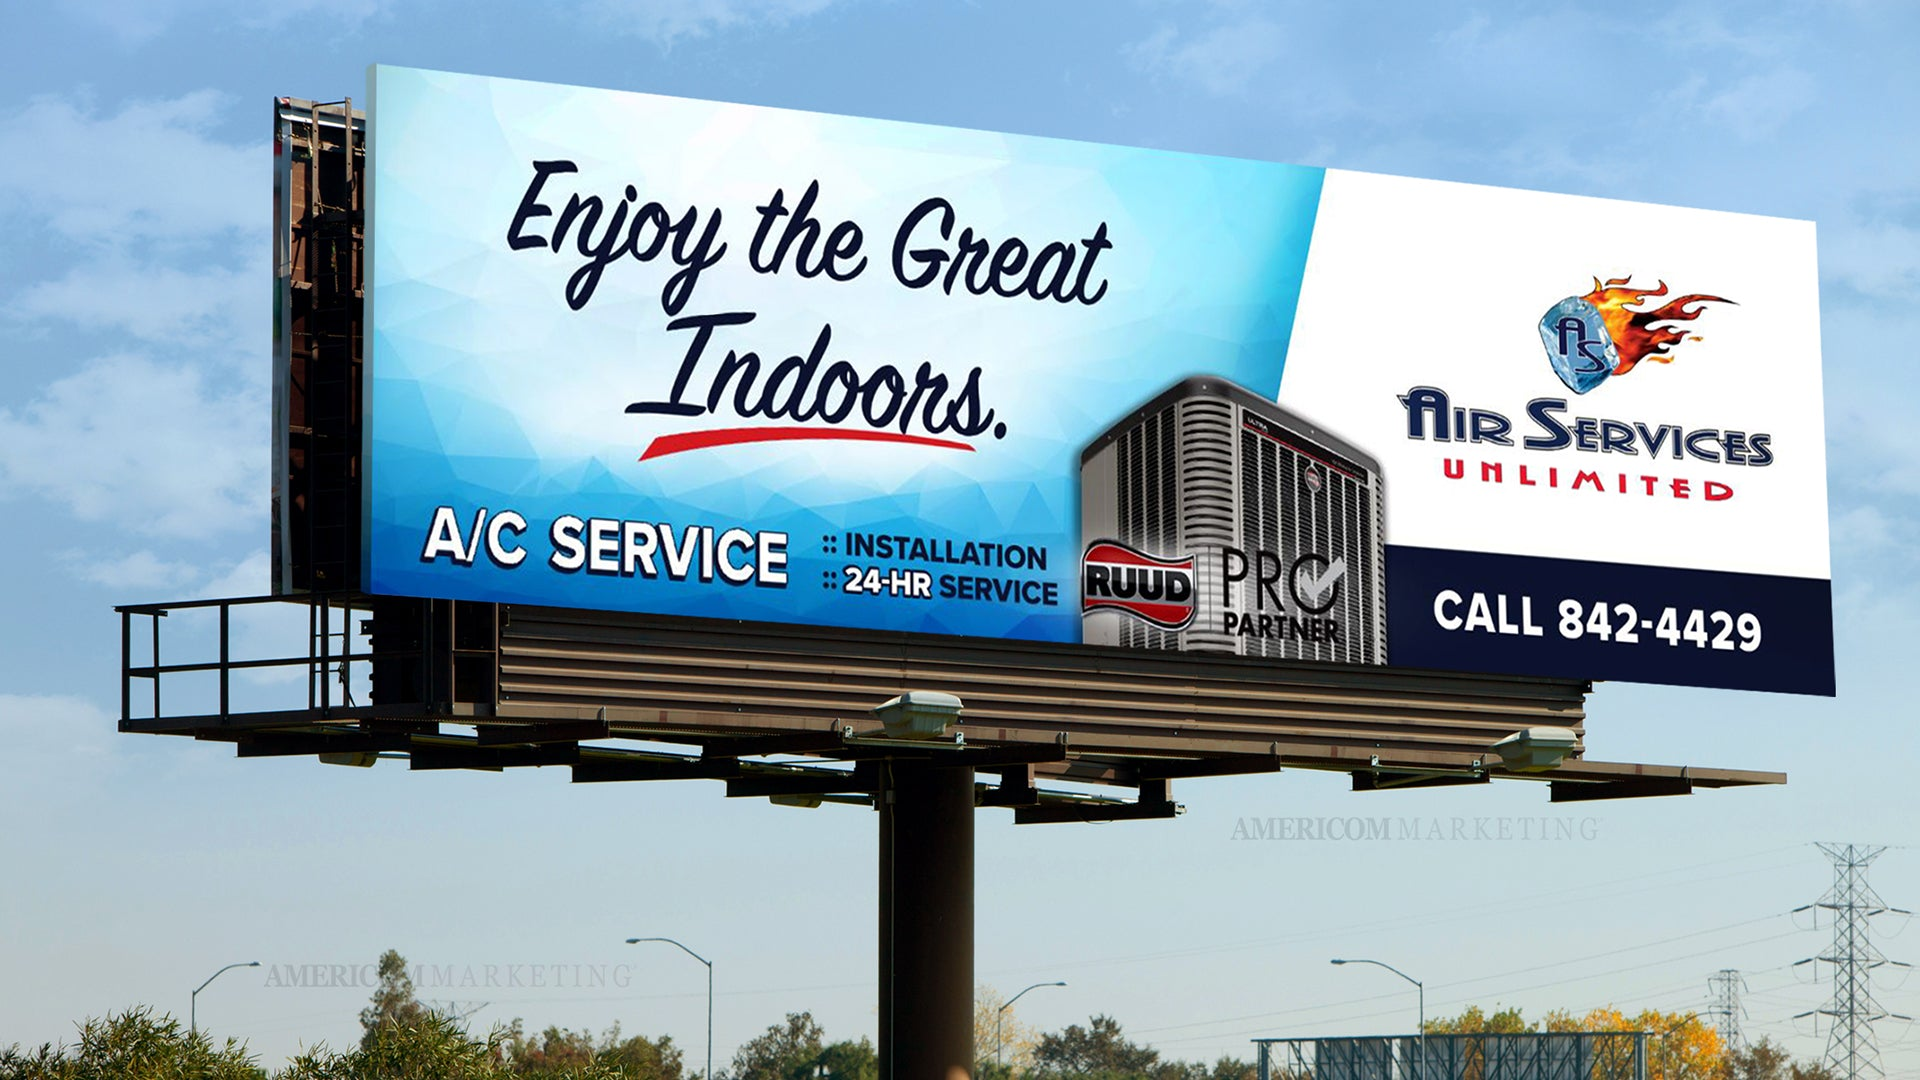 Air Services Unlimited Billboard Ad